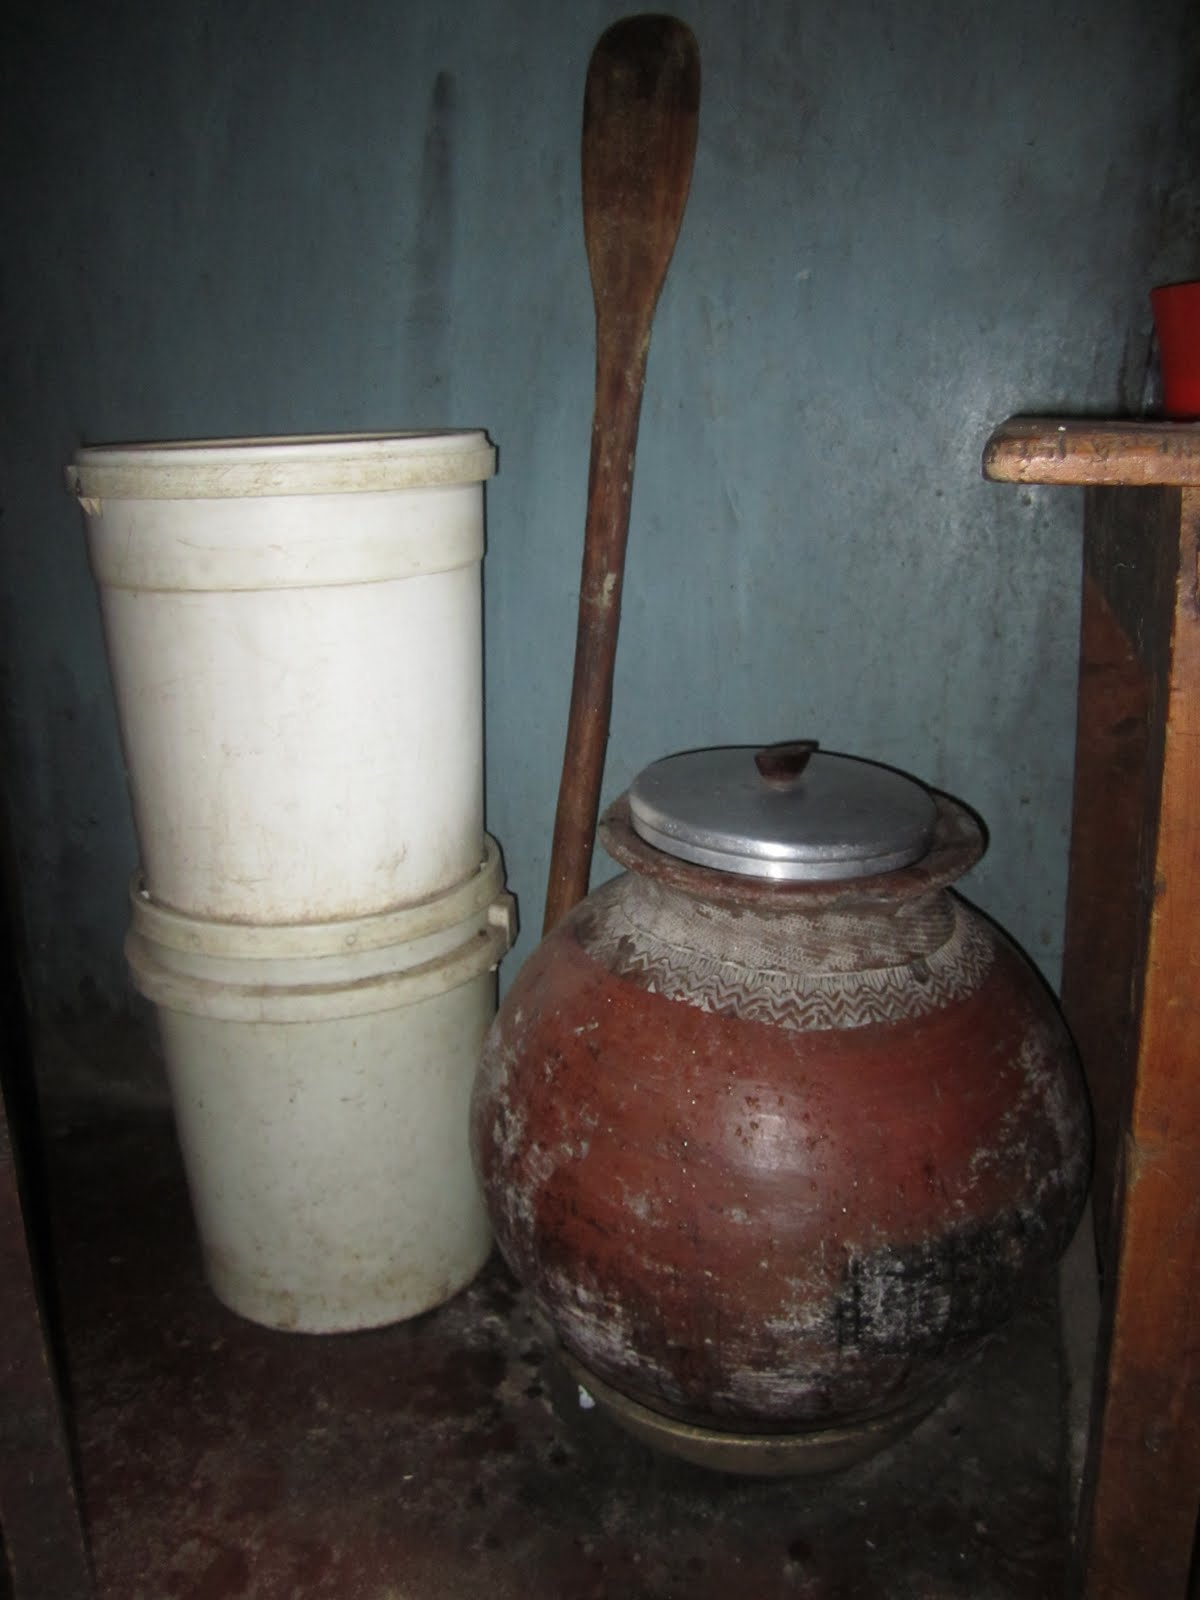 This is the part of the kitchen hidden by the doorway in the previous photo the hardened ceramic jug was what momma mary liked the call the african